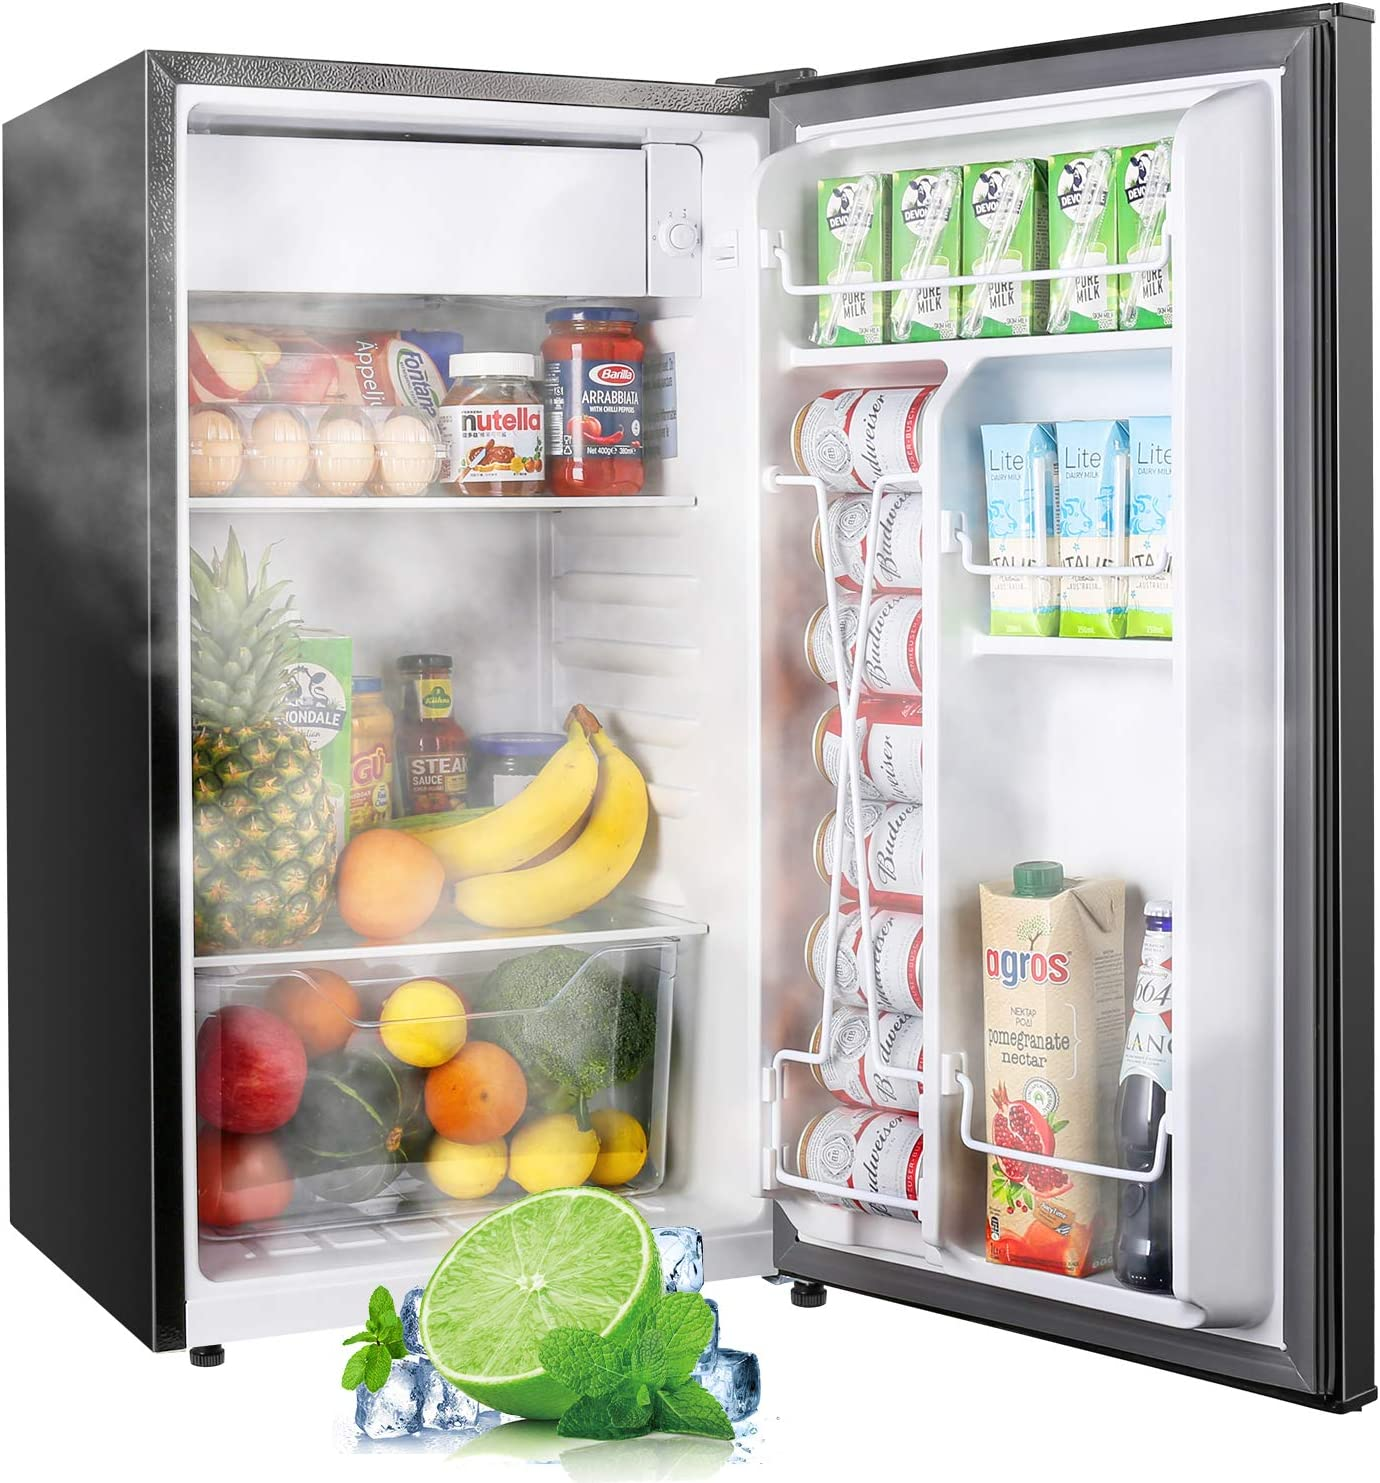 TECCPO Mini Fridge with Raleigh Mall Freezer TAMF32 Noise En Lowest price challenge 3.1 Cu.Ft Low